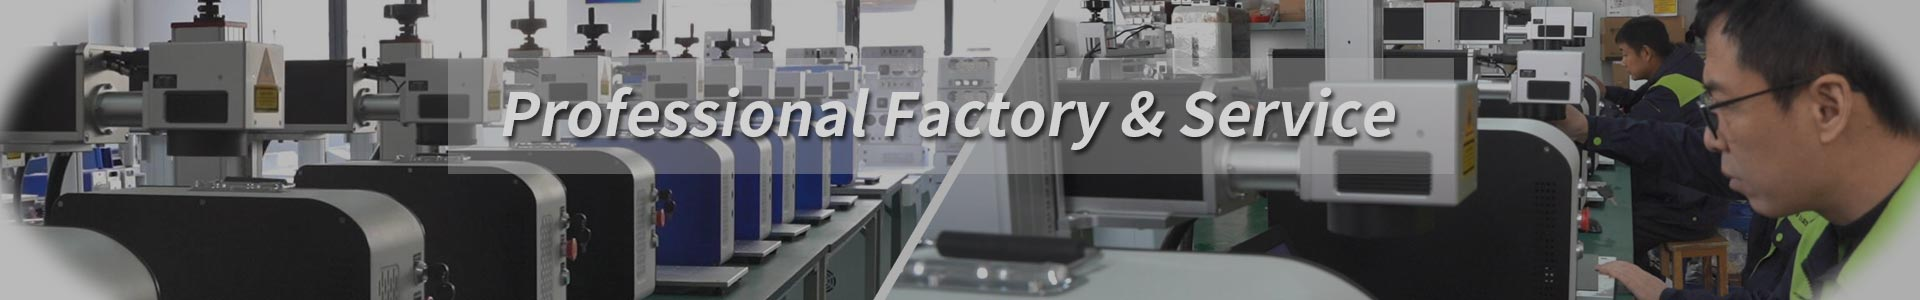 Professional Factory & Service